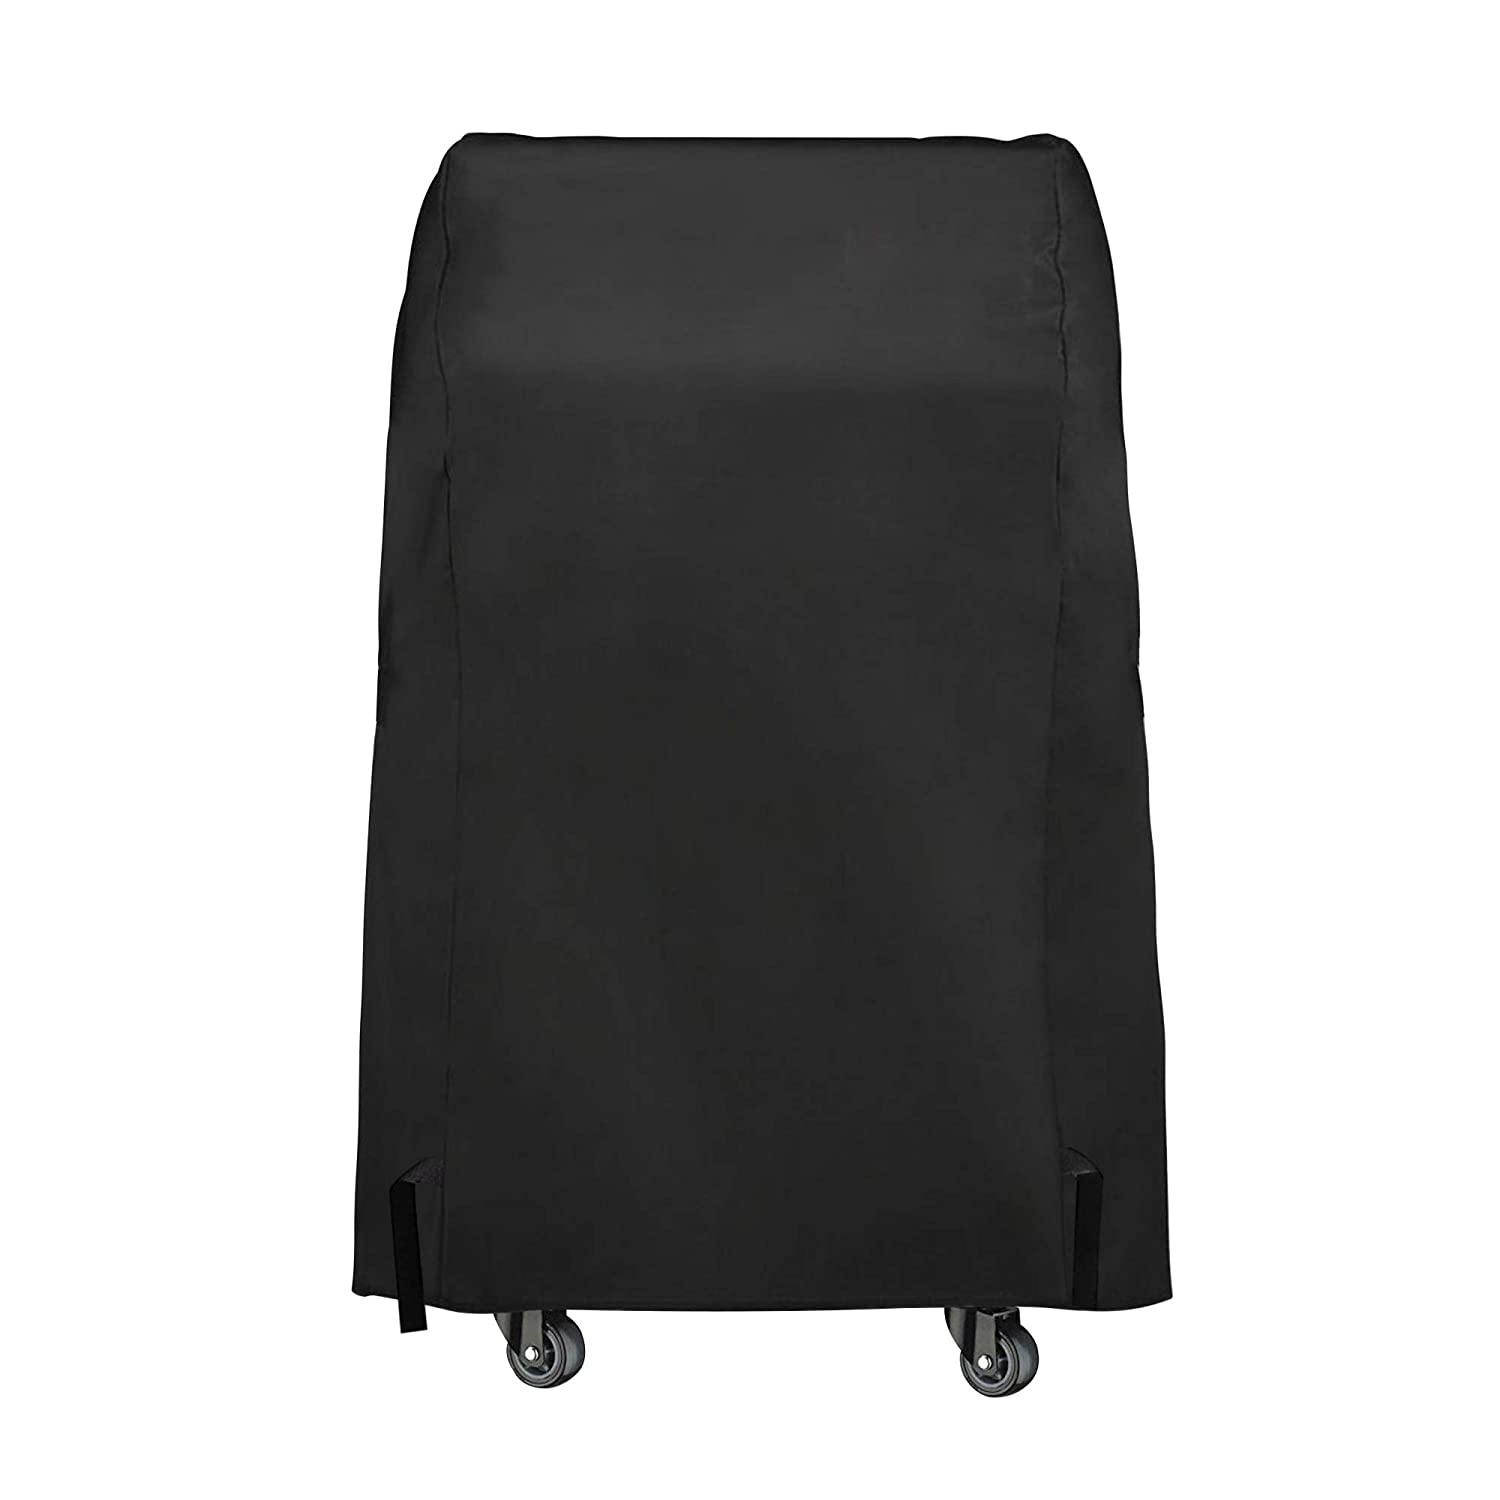 Small Grill Cover